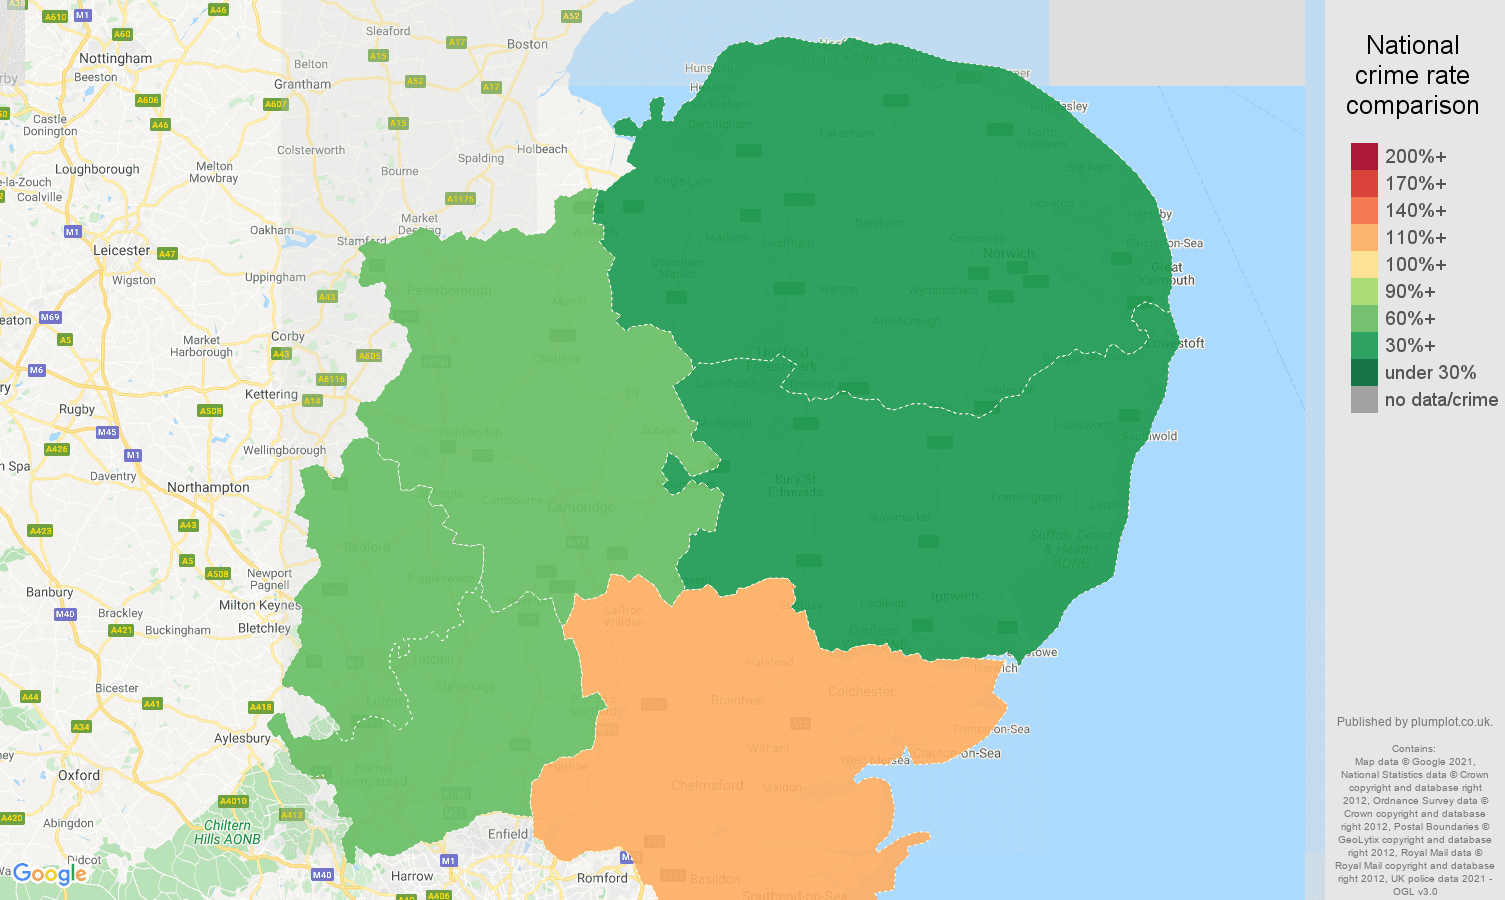 East of England antisocial behaviour crime rate comparison map